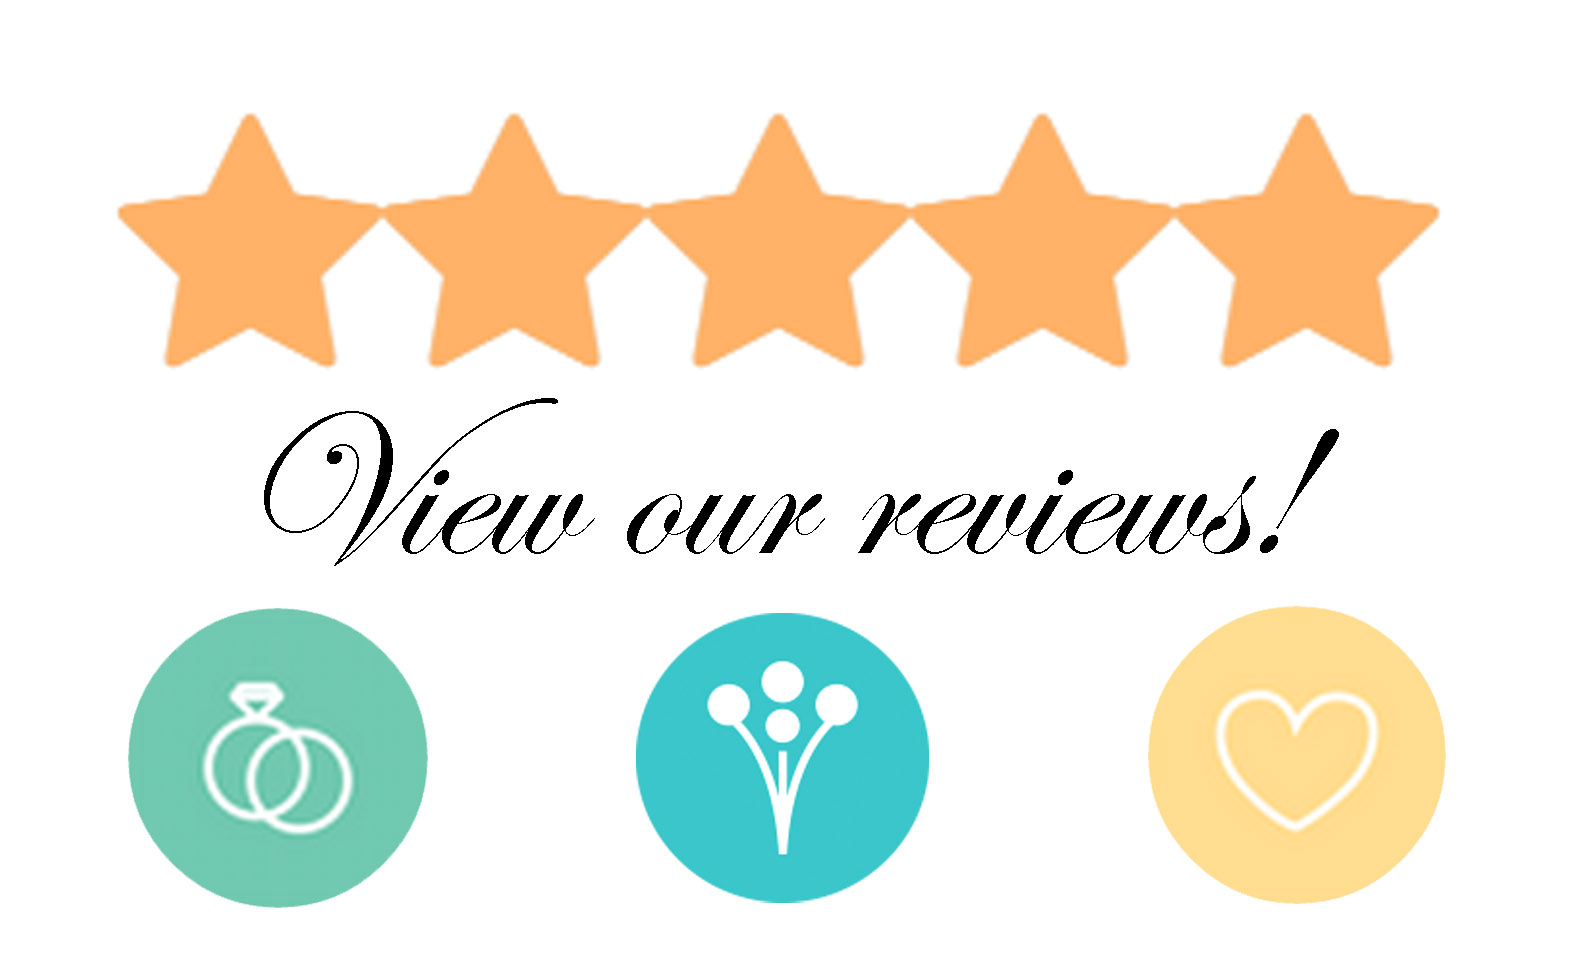 View our reviews copy1.jpg